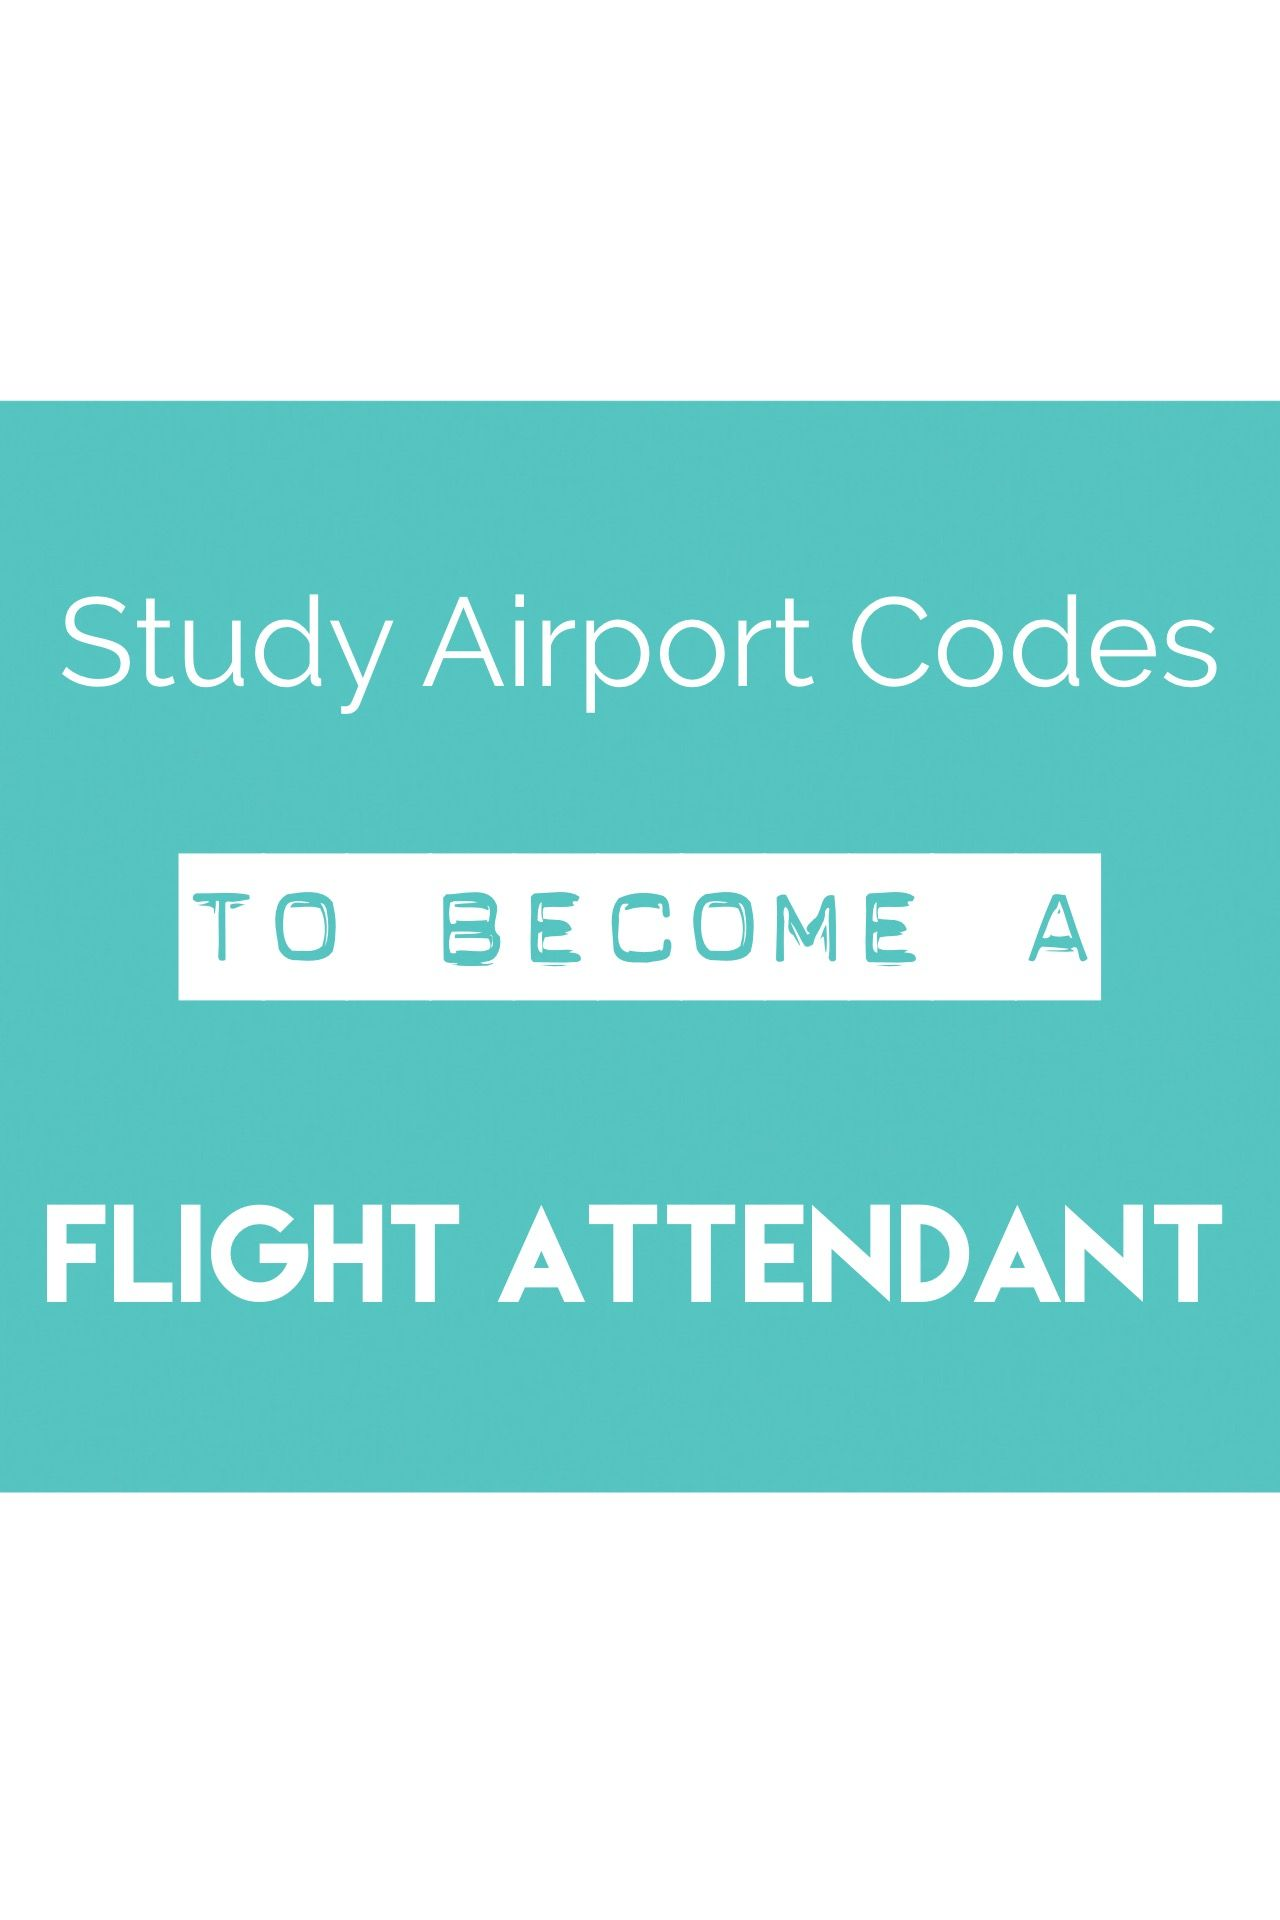 flight attendant interview questions and answers pdf kappa alpha sigma tau alpha nu  how to become a flight attendant learn your airport codes before training